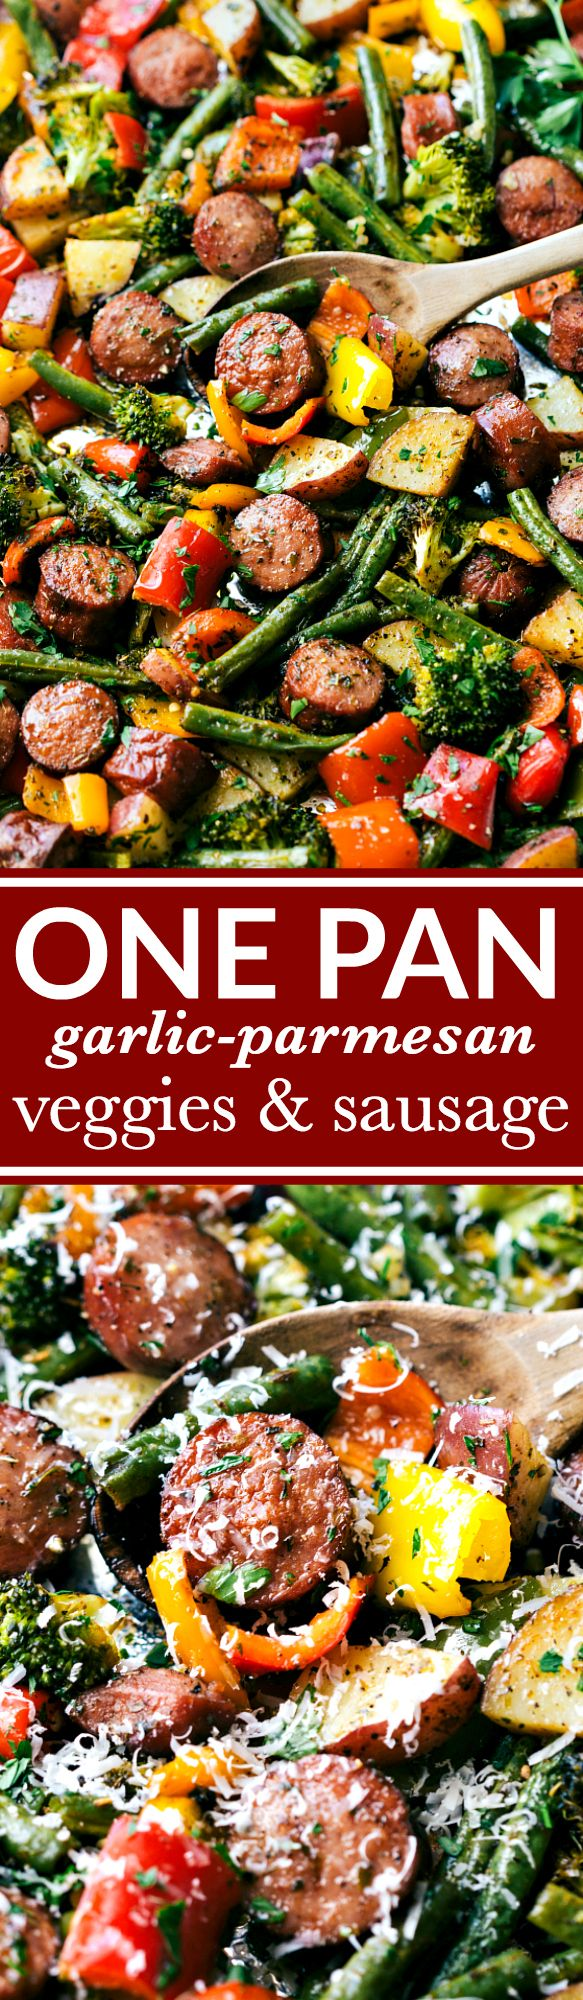 Healthy garlic parmesan roasted veggies with sausage and herbs all made and cooked on one pan. 10 minutes prep, easy clean-up!